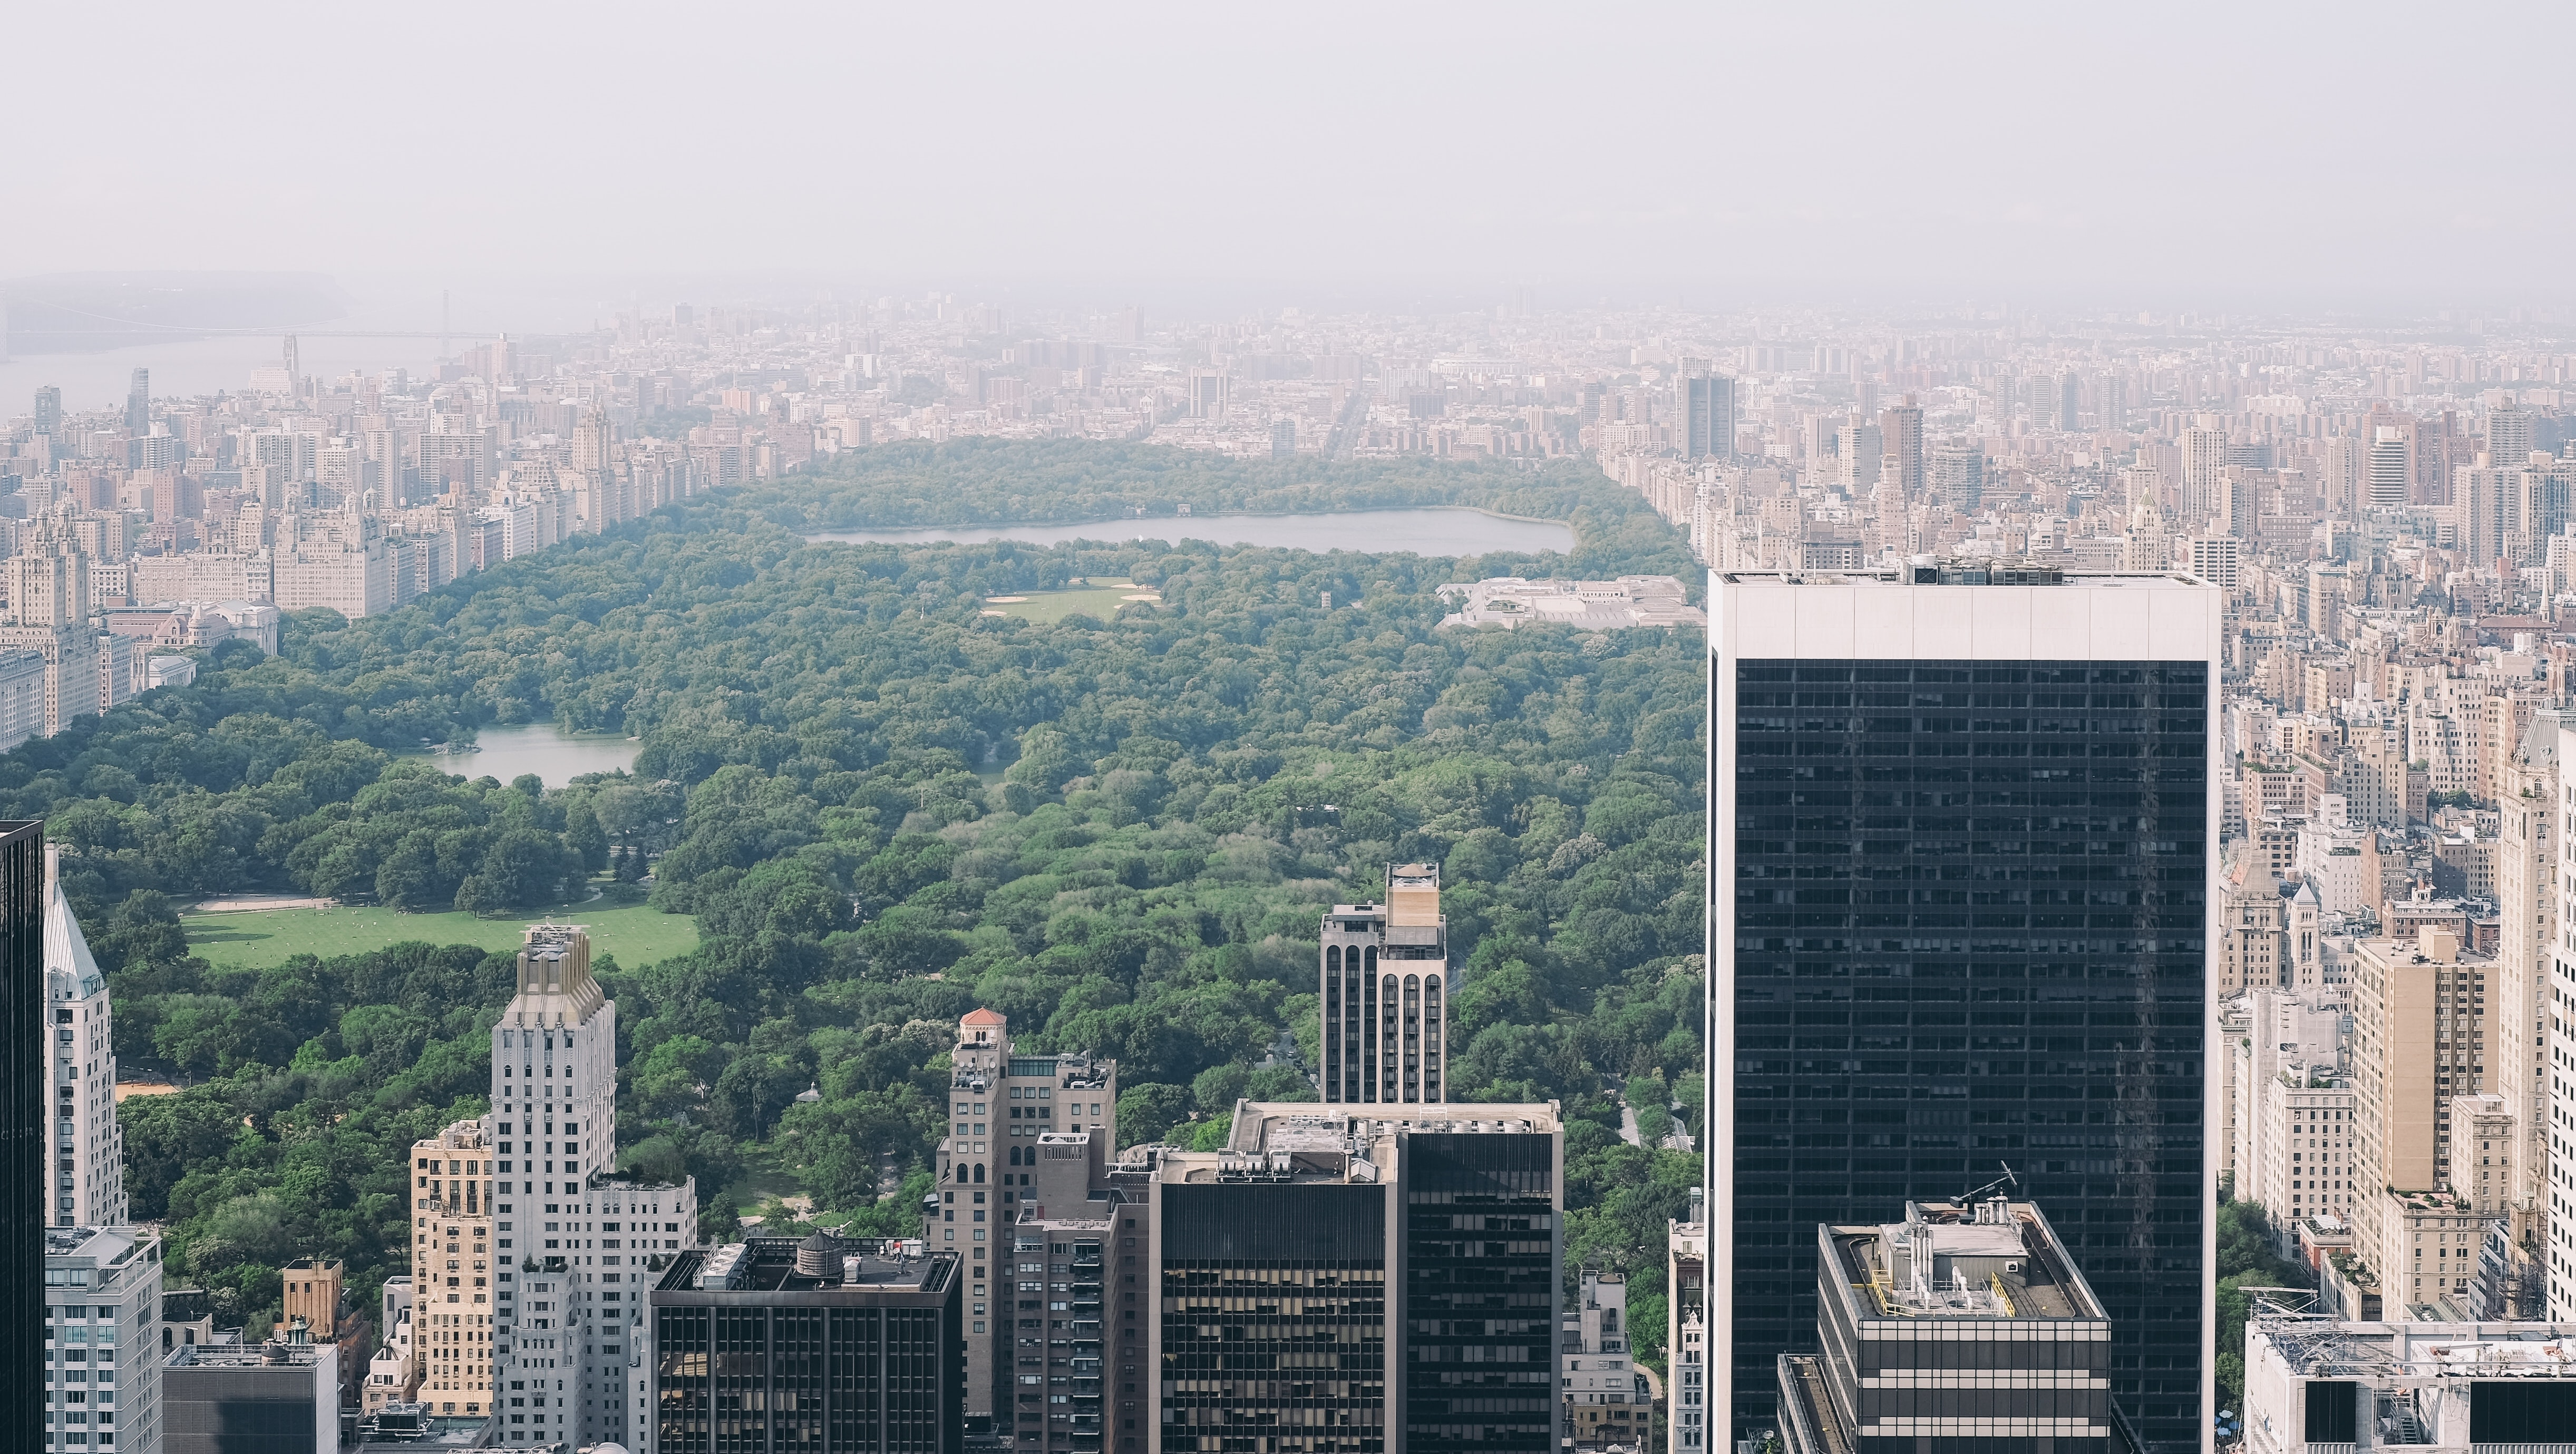 Drone view of Central Park in summer with green trees and the New York City skyline